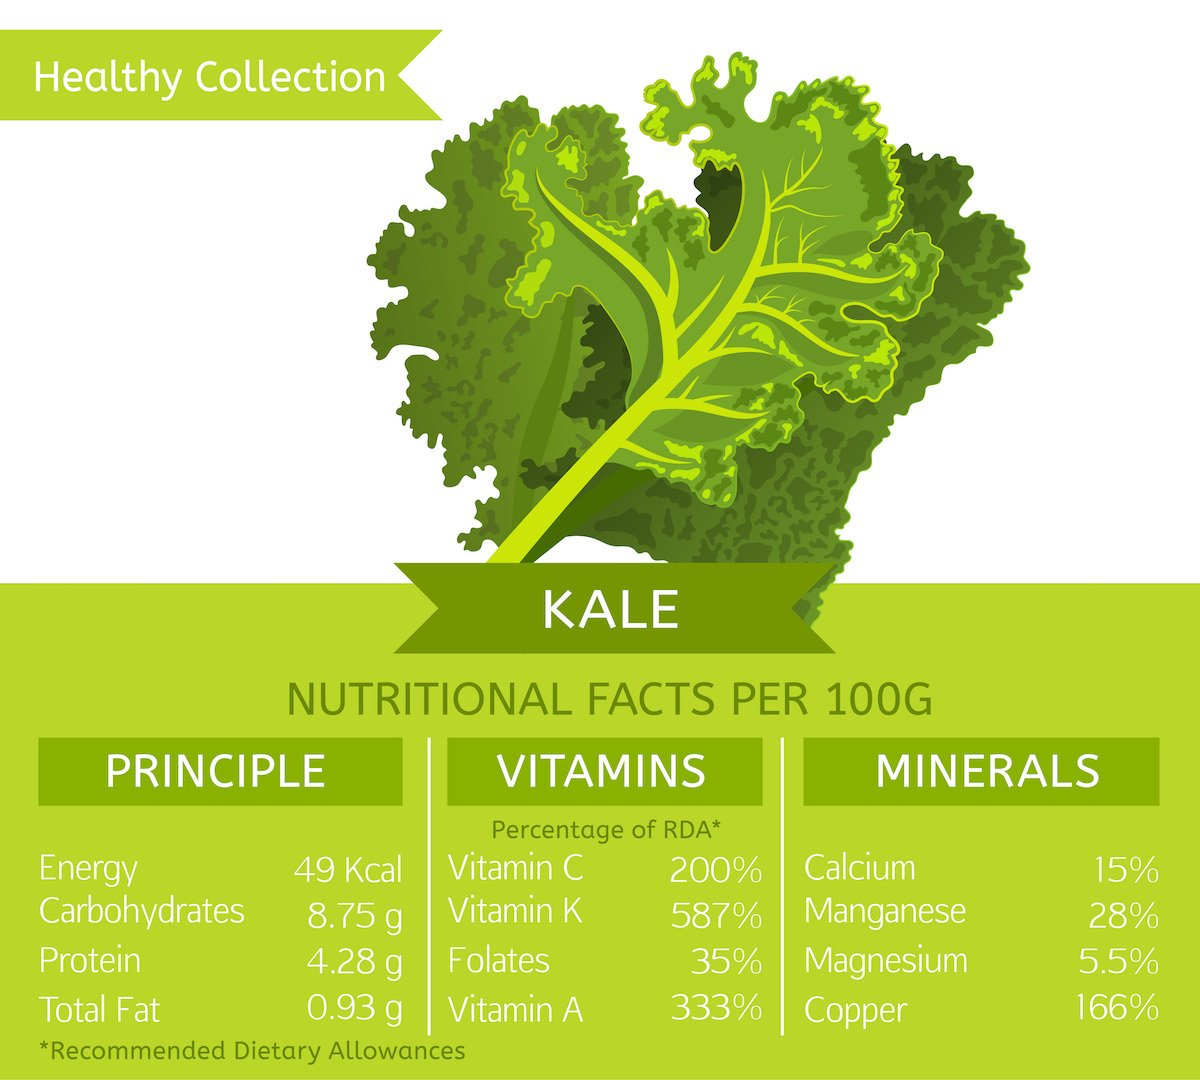 Kale nutritional facts chart